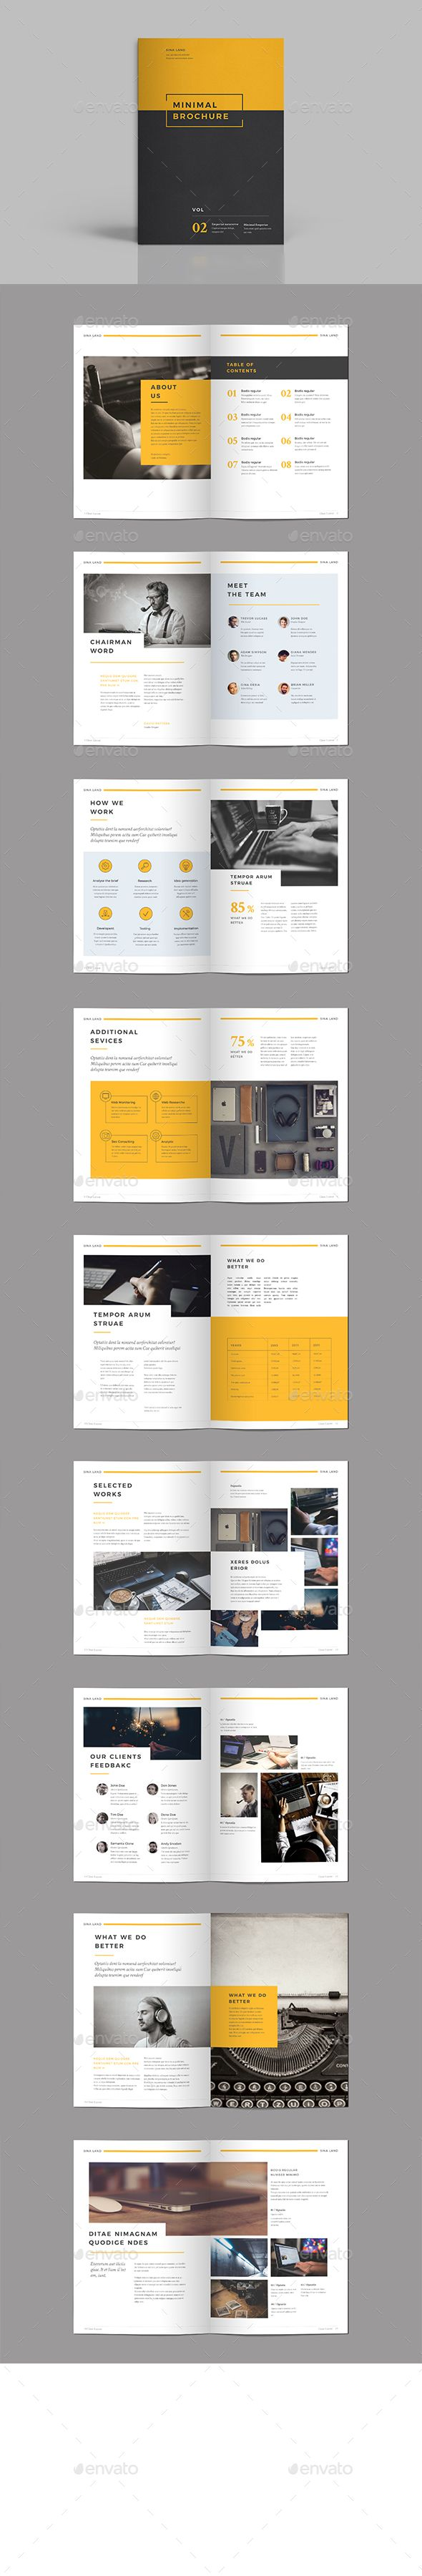 Minimal Brochure Template InDesign INDD